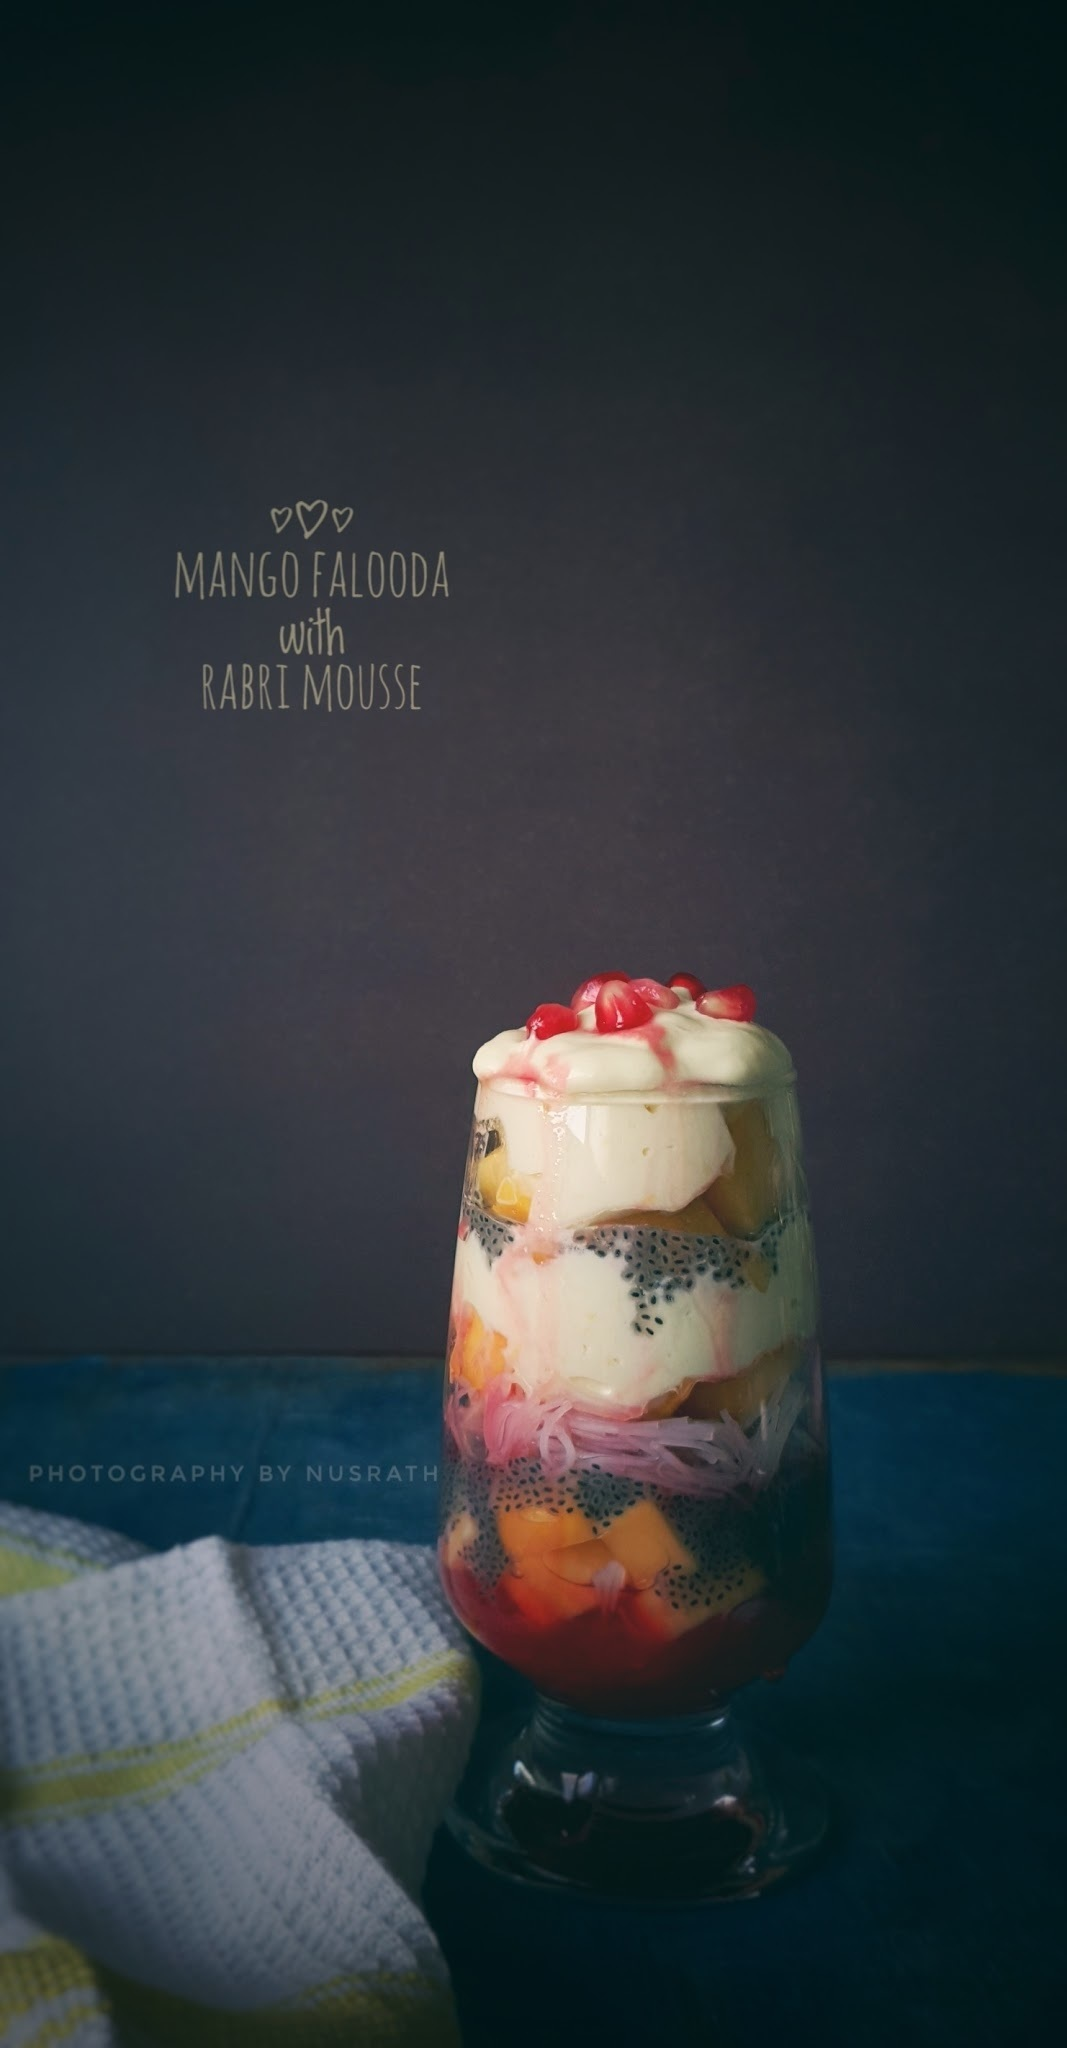 Mango falooda with kesar rabri mousse